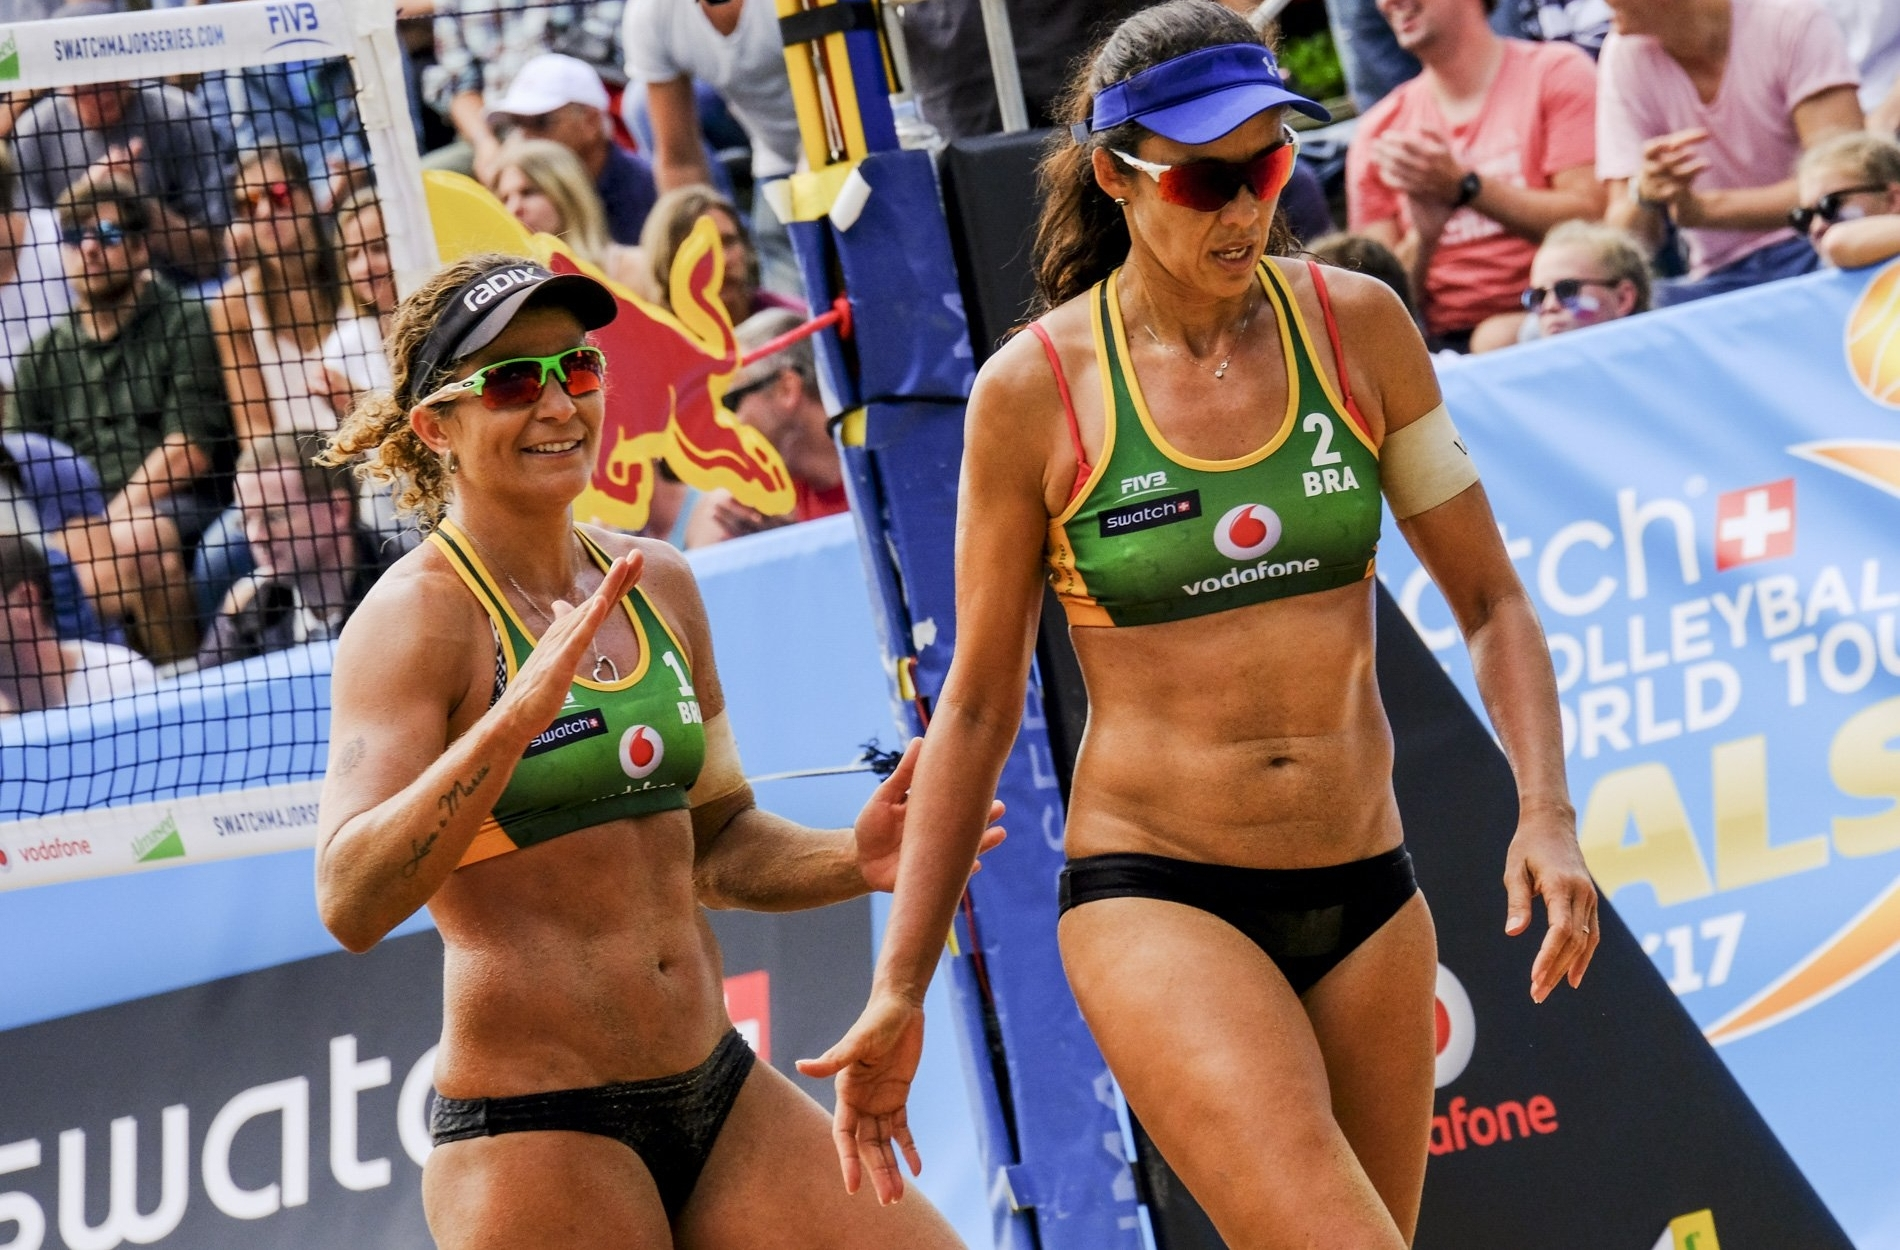 Larissa and Talita's first win of the tournament secured them a place in the last eight